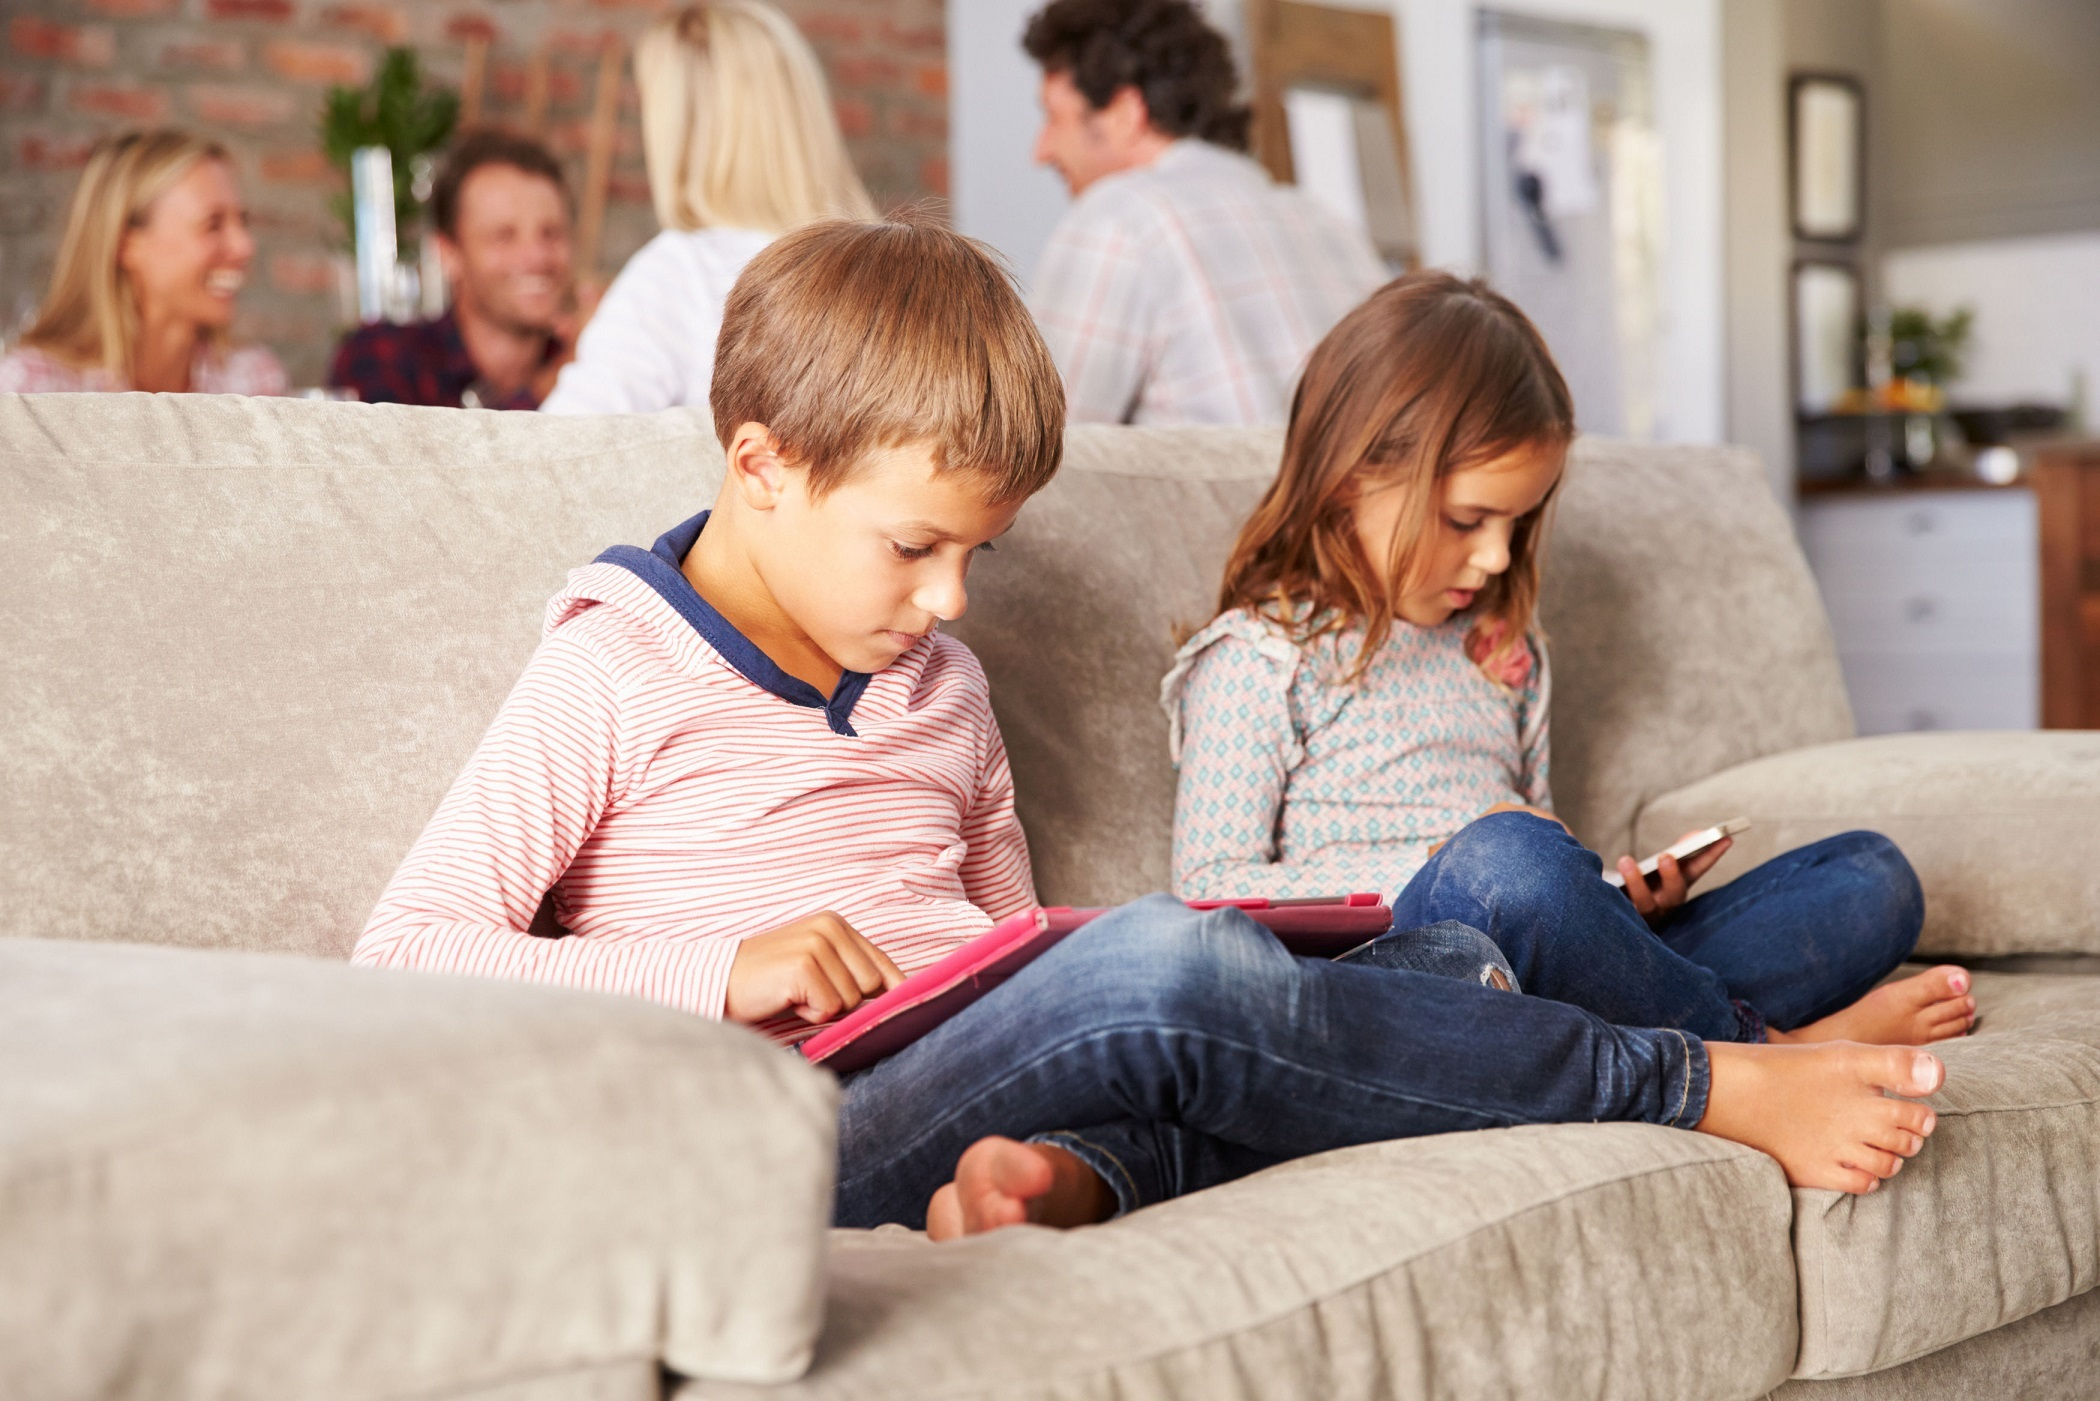 WARNING: Turn off children's gadgets an hour before bed, parents advised. PA Photo/thinkstockphotos.